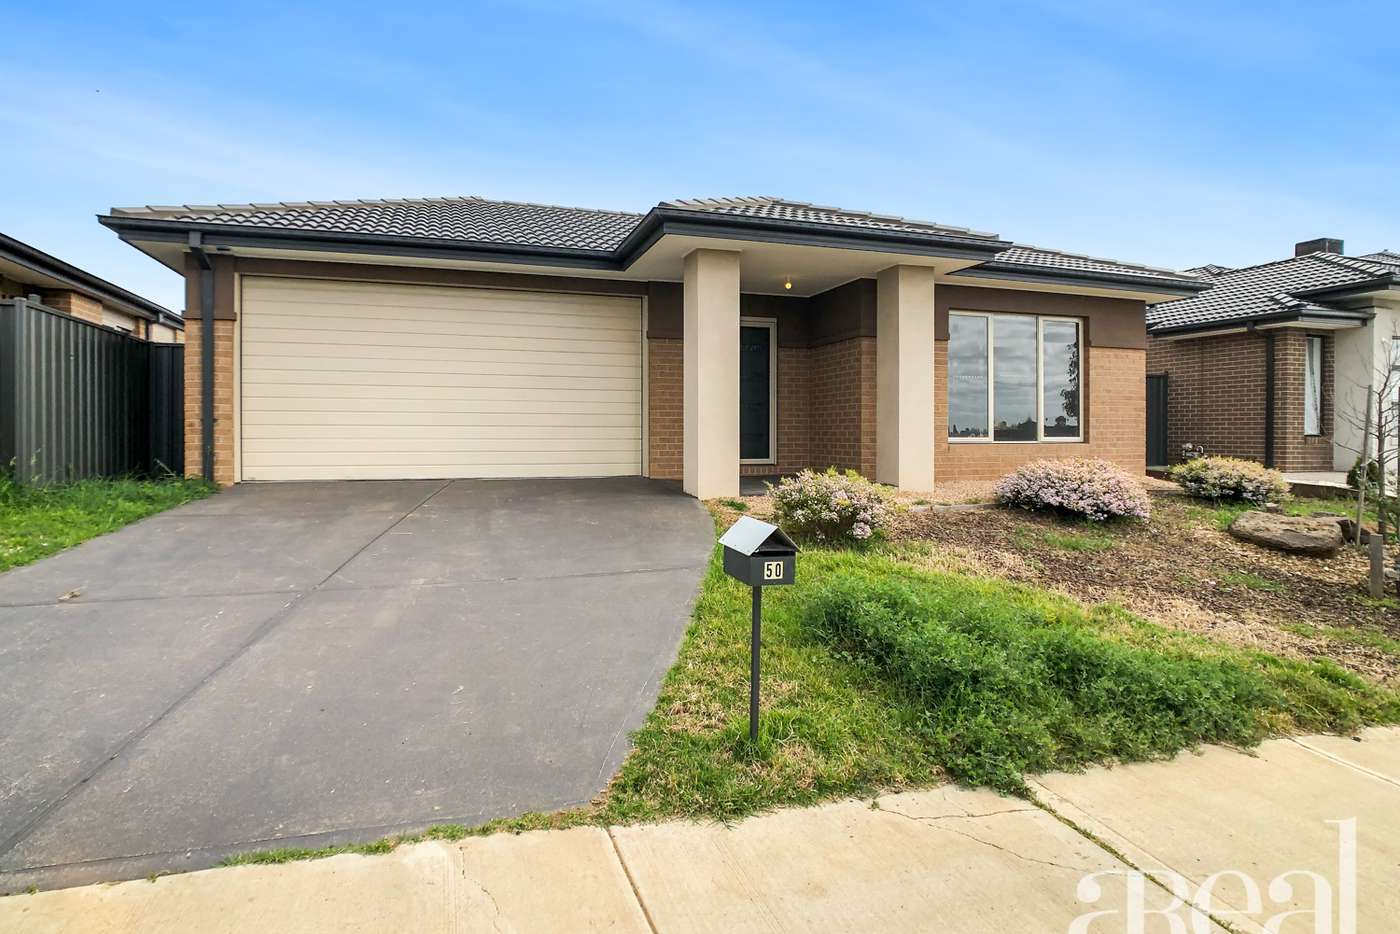 Main view of Homely house listing, 50 Lansdowne Parade, Tarneit VIC 3029